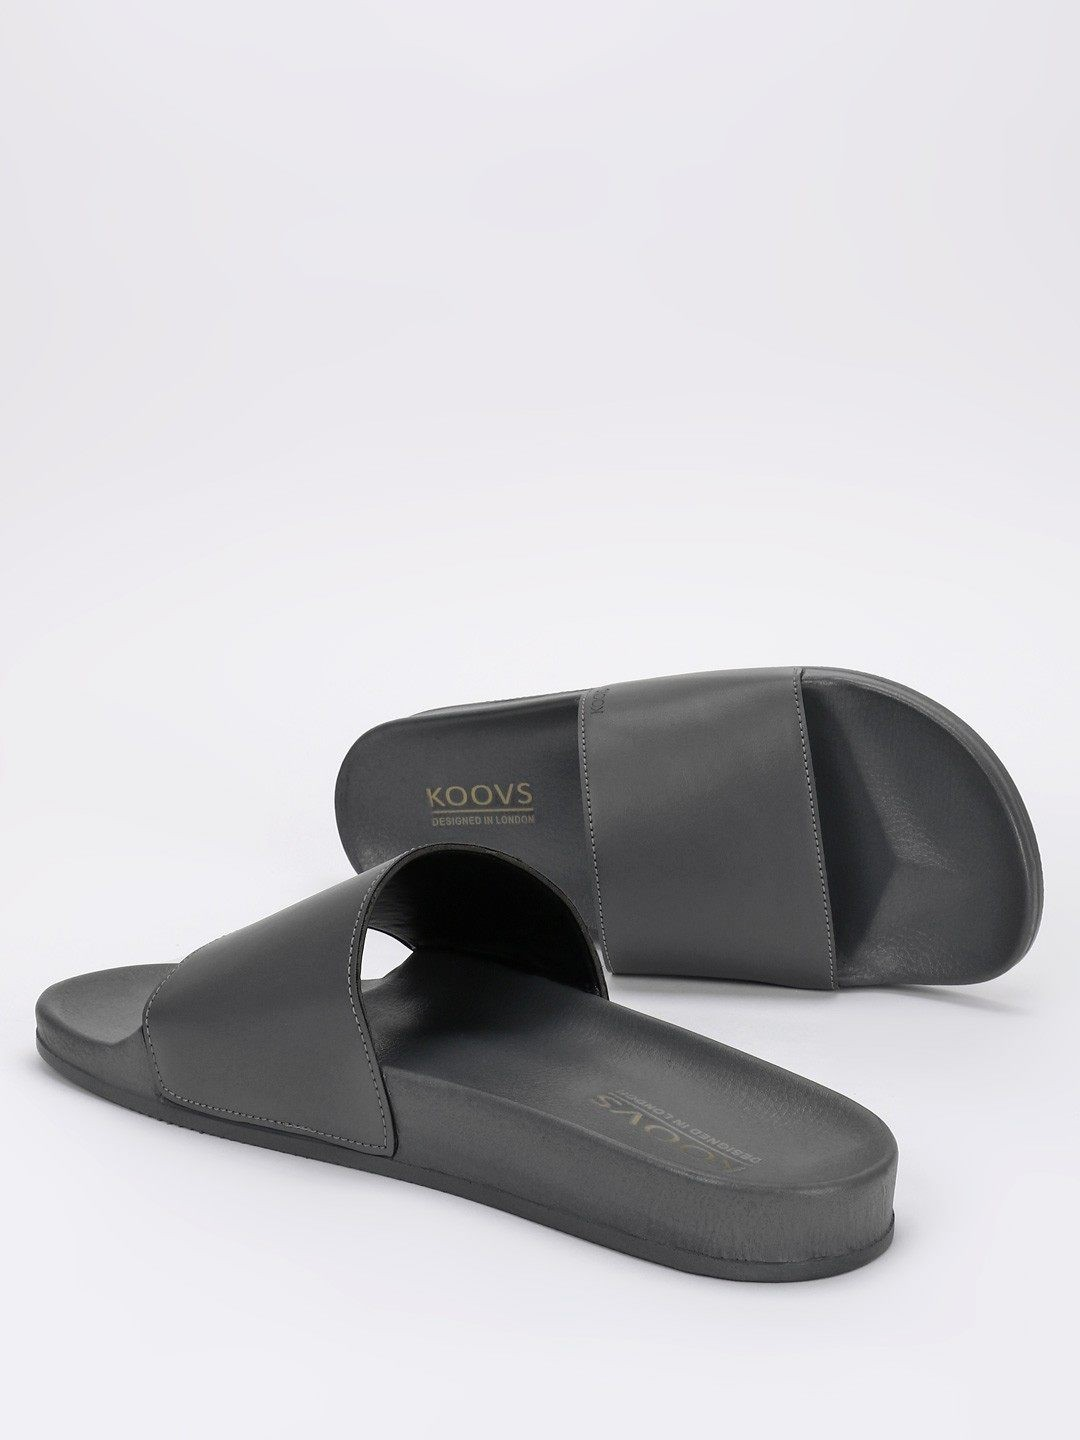 KOOVS Grey Basic Pool Slides 1